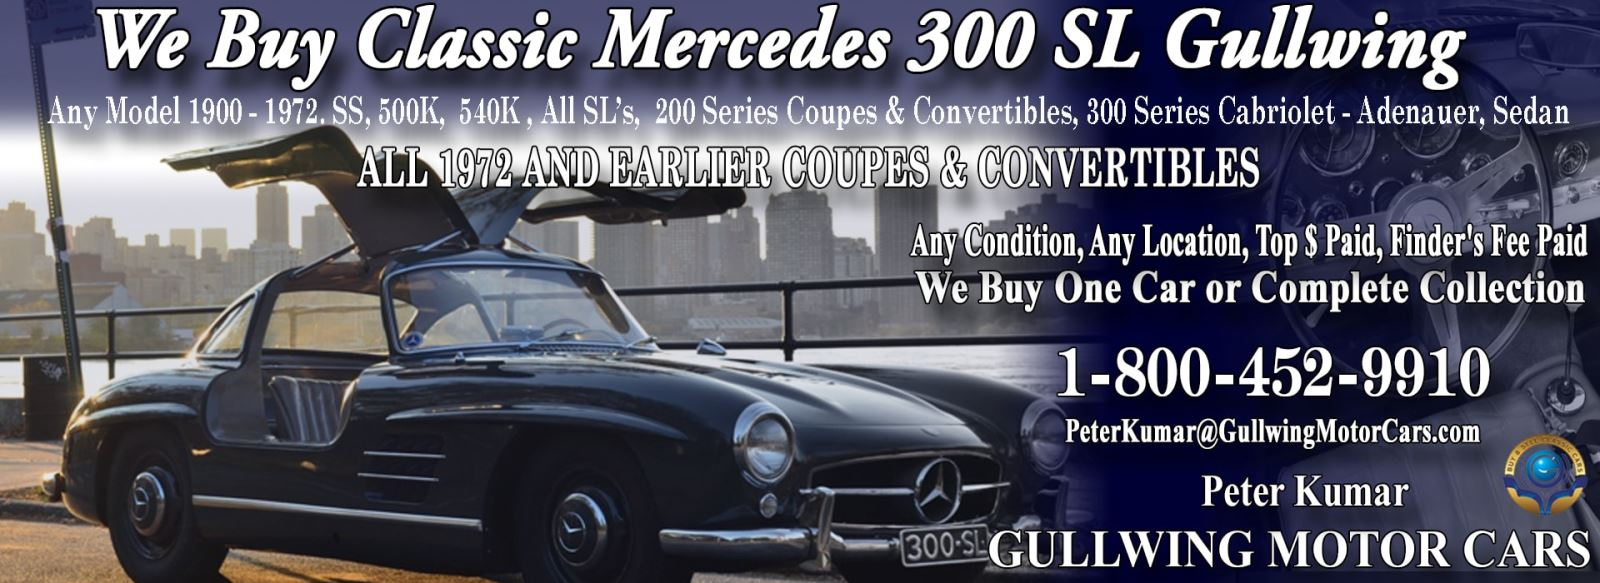 Classic Mercedes 300SL Gullwing for sale, we buy vintage Mercedes 300 SL Gullwing. Call Peter Kumar. Gullwing Motor